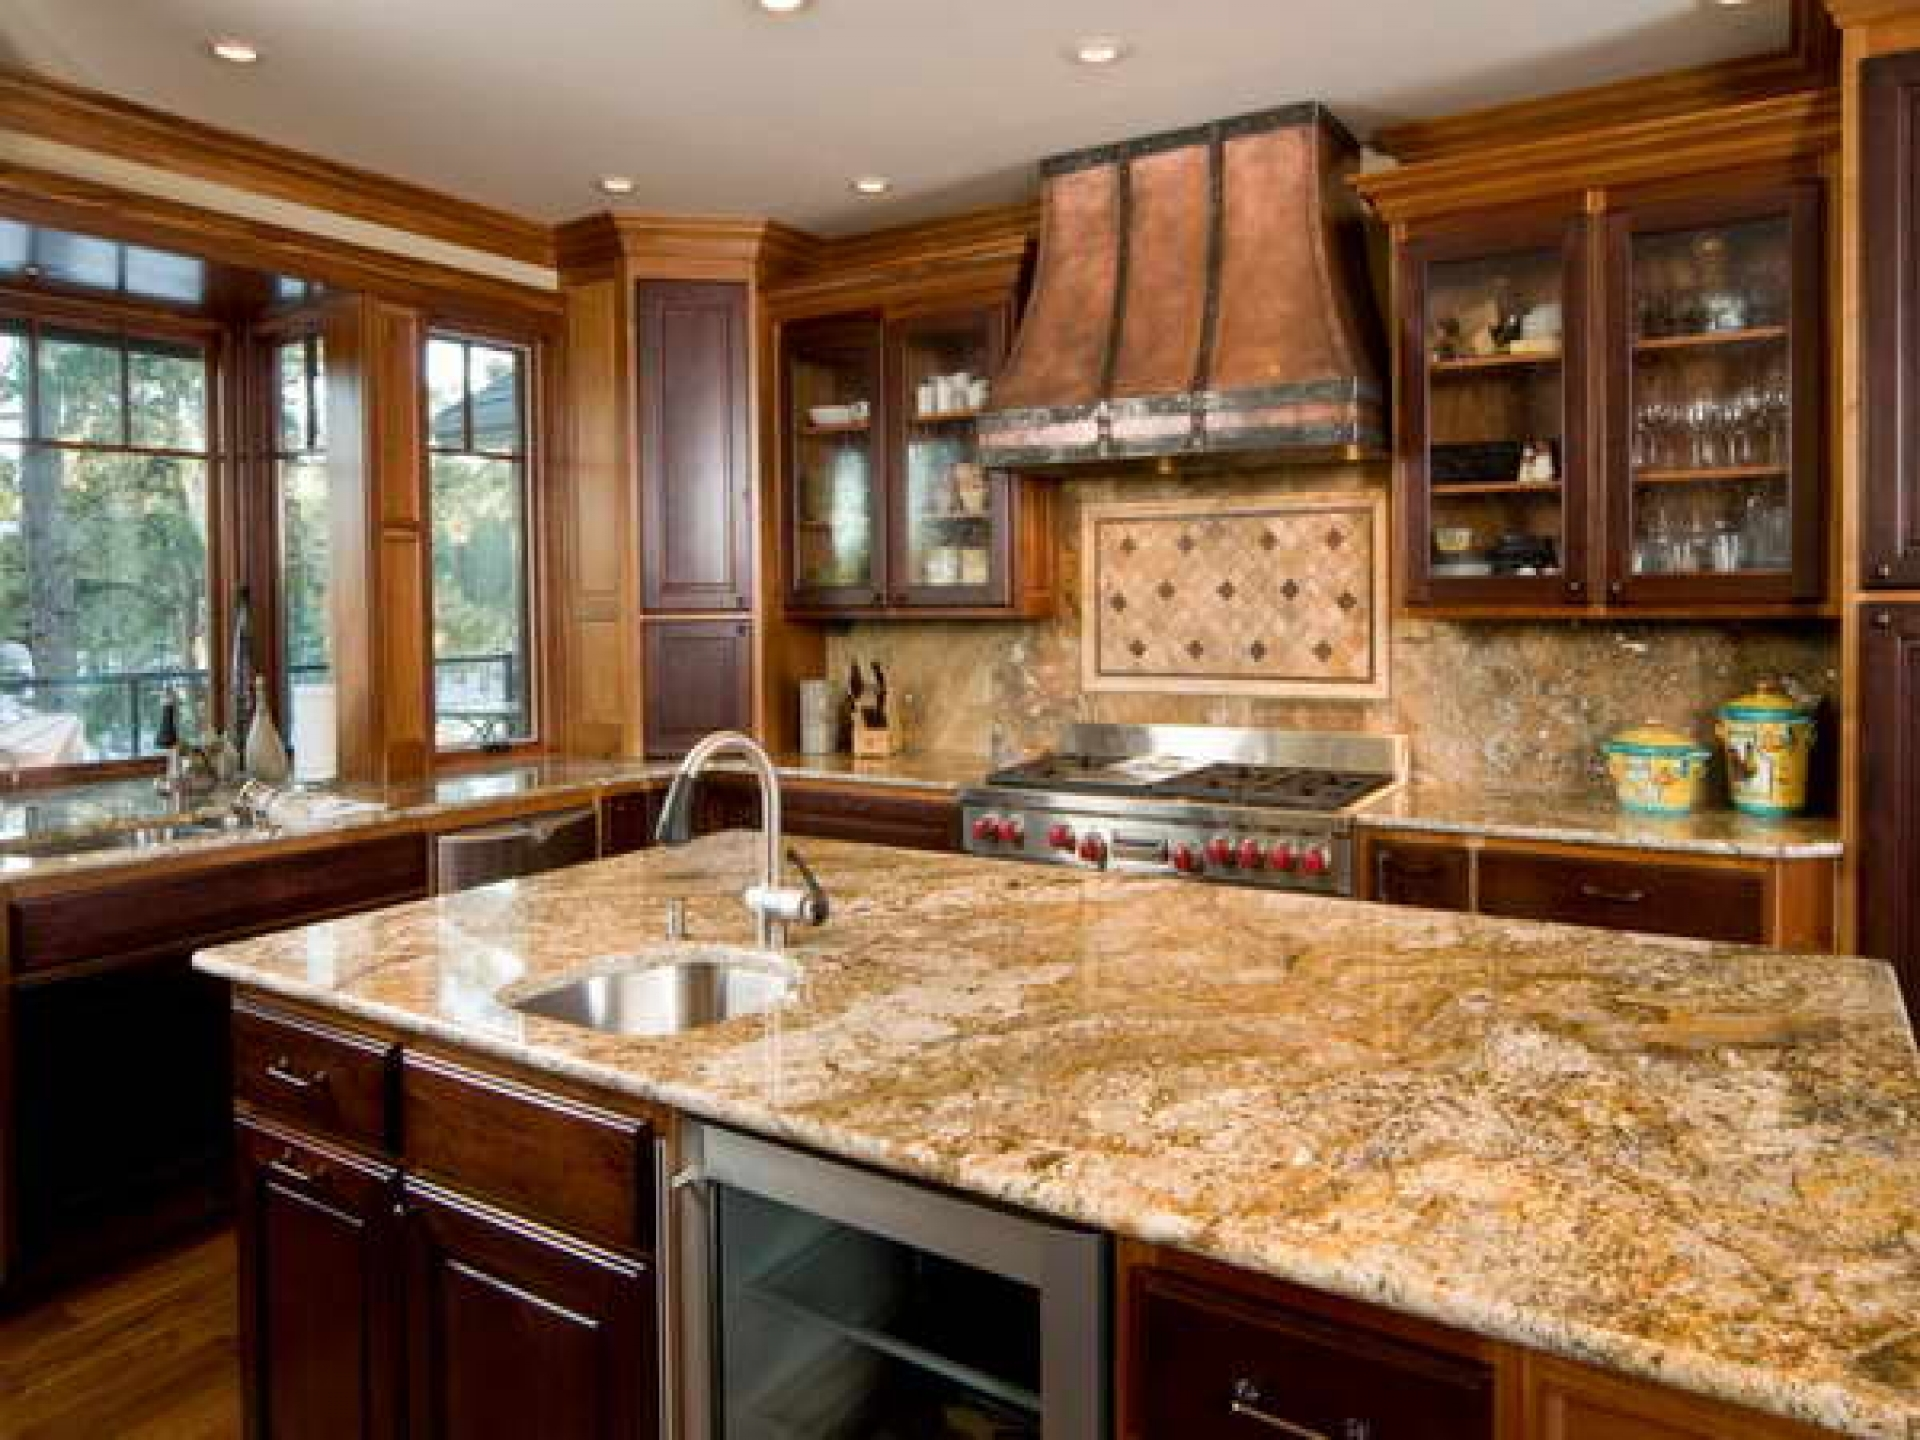 Images Of Kitchen Cabinets And Countertops